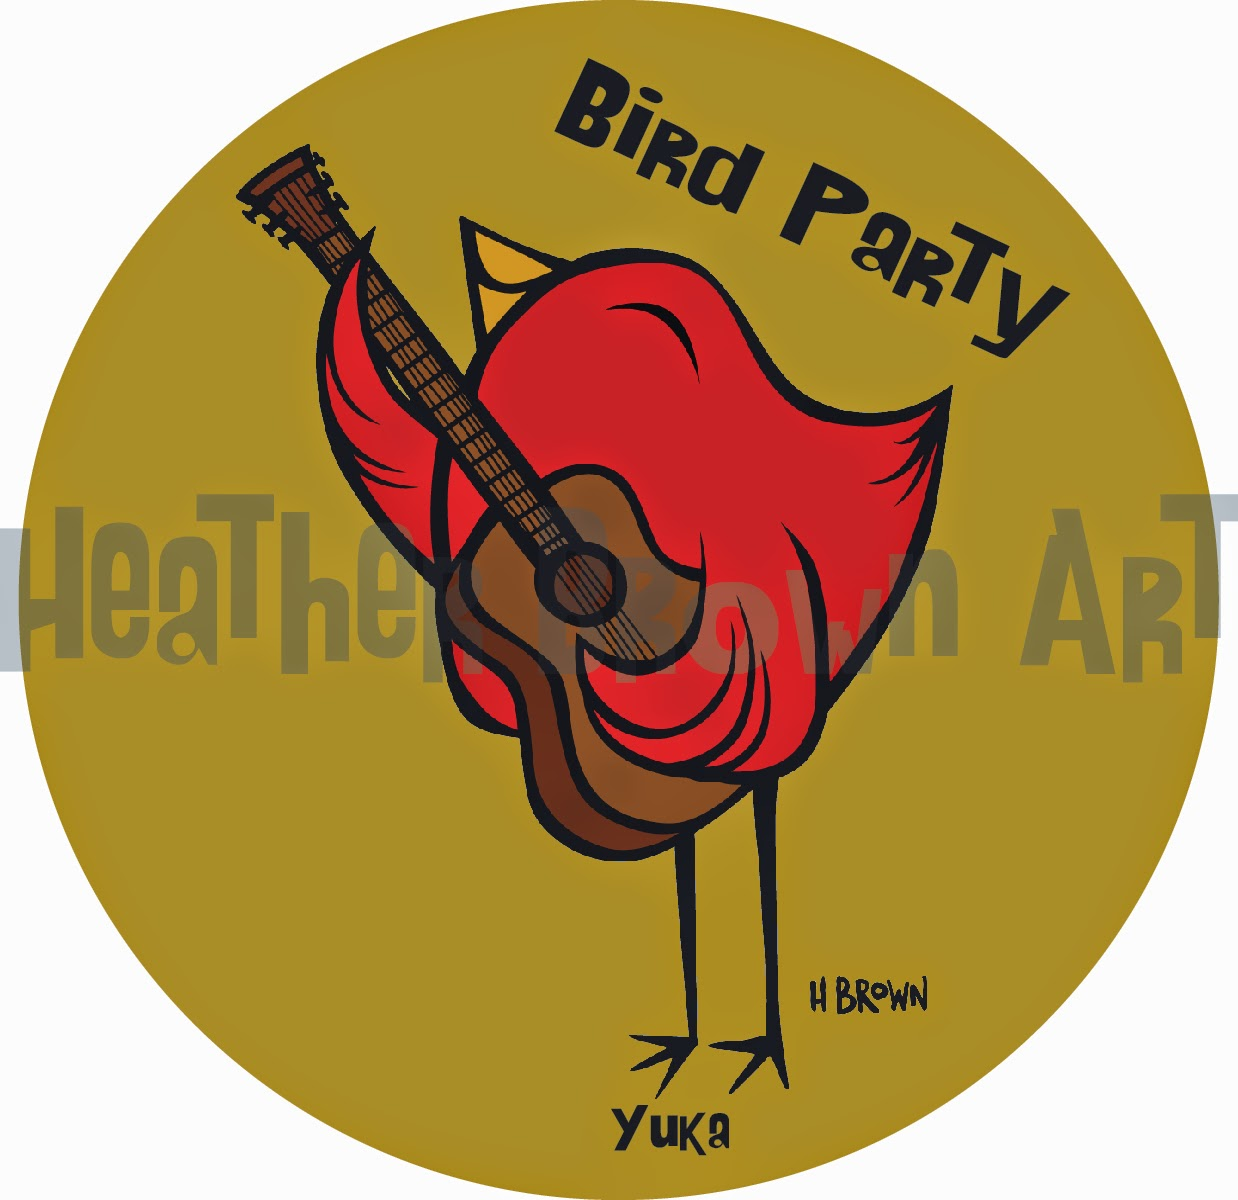 bird party the band